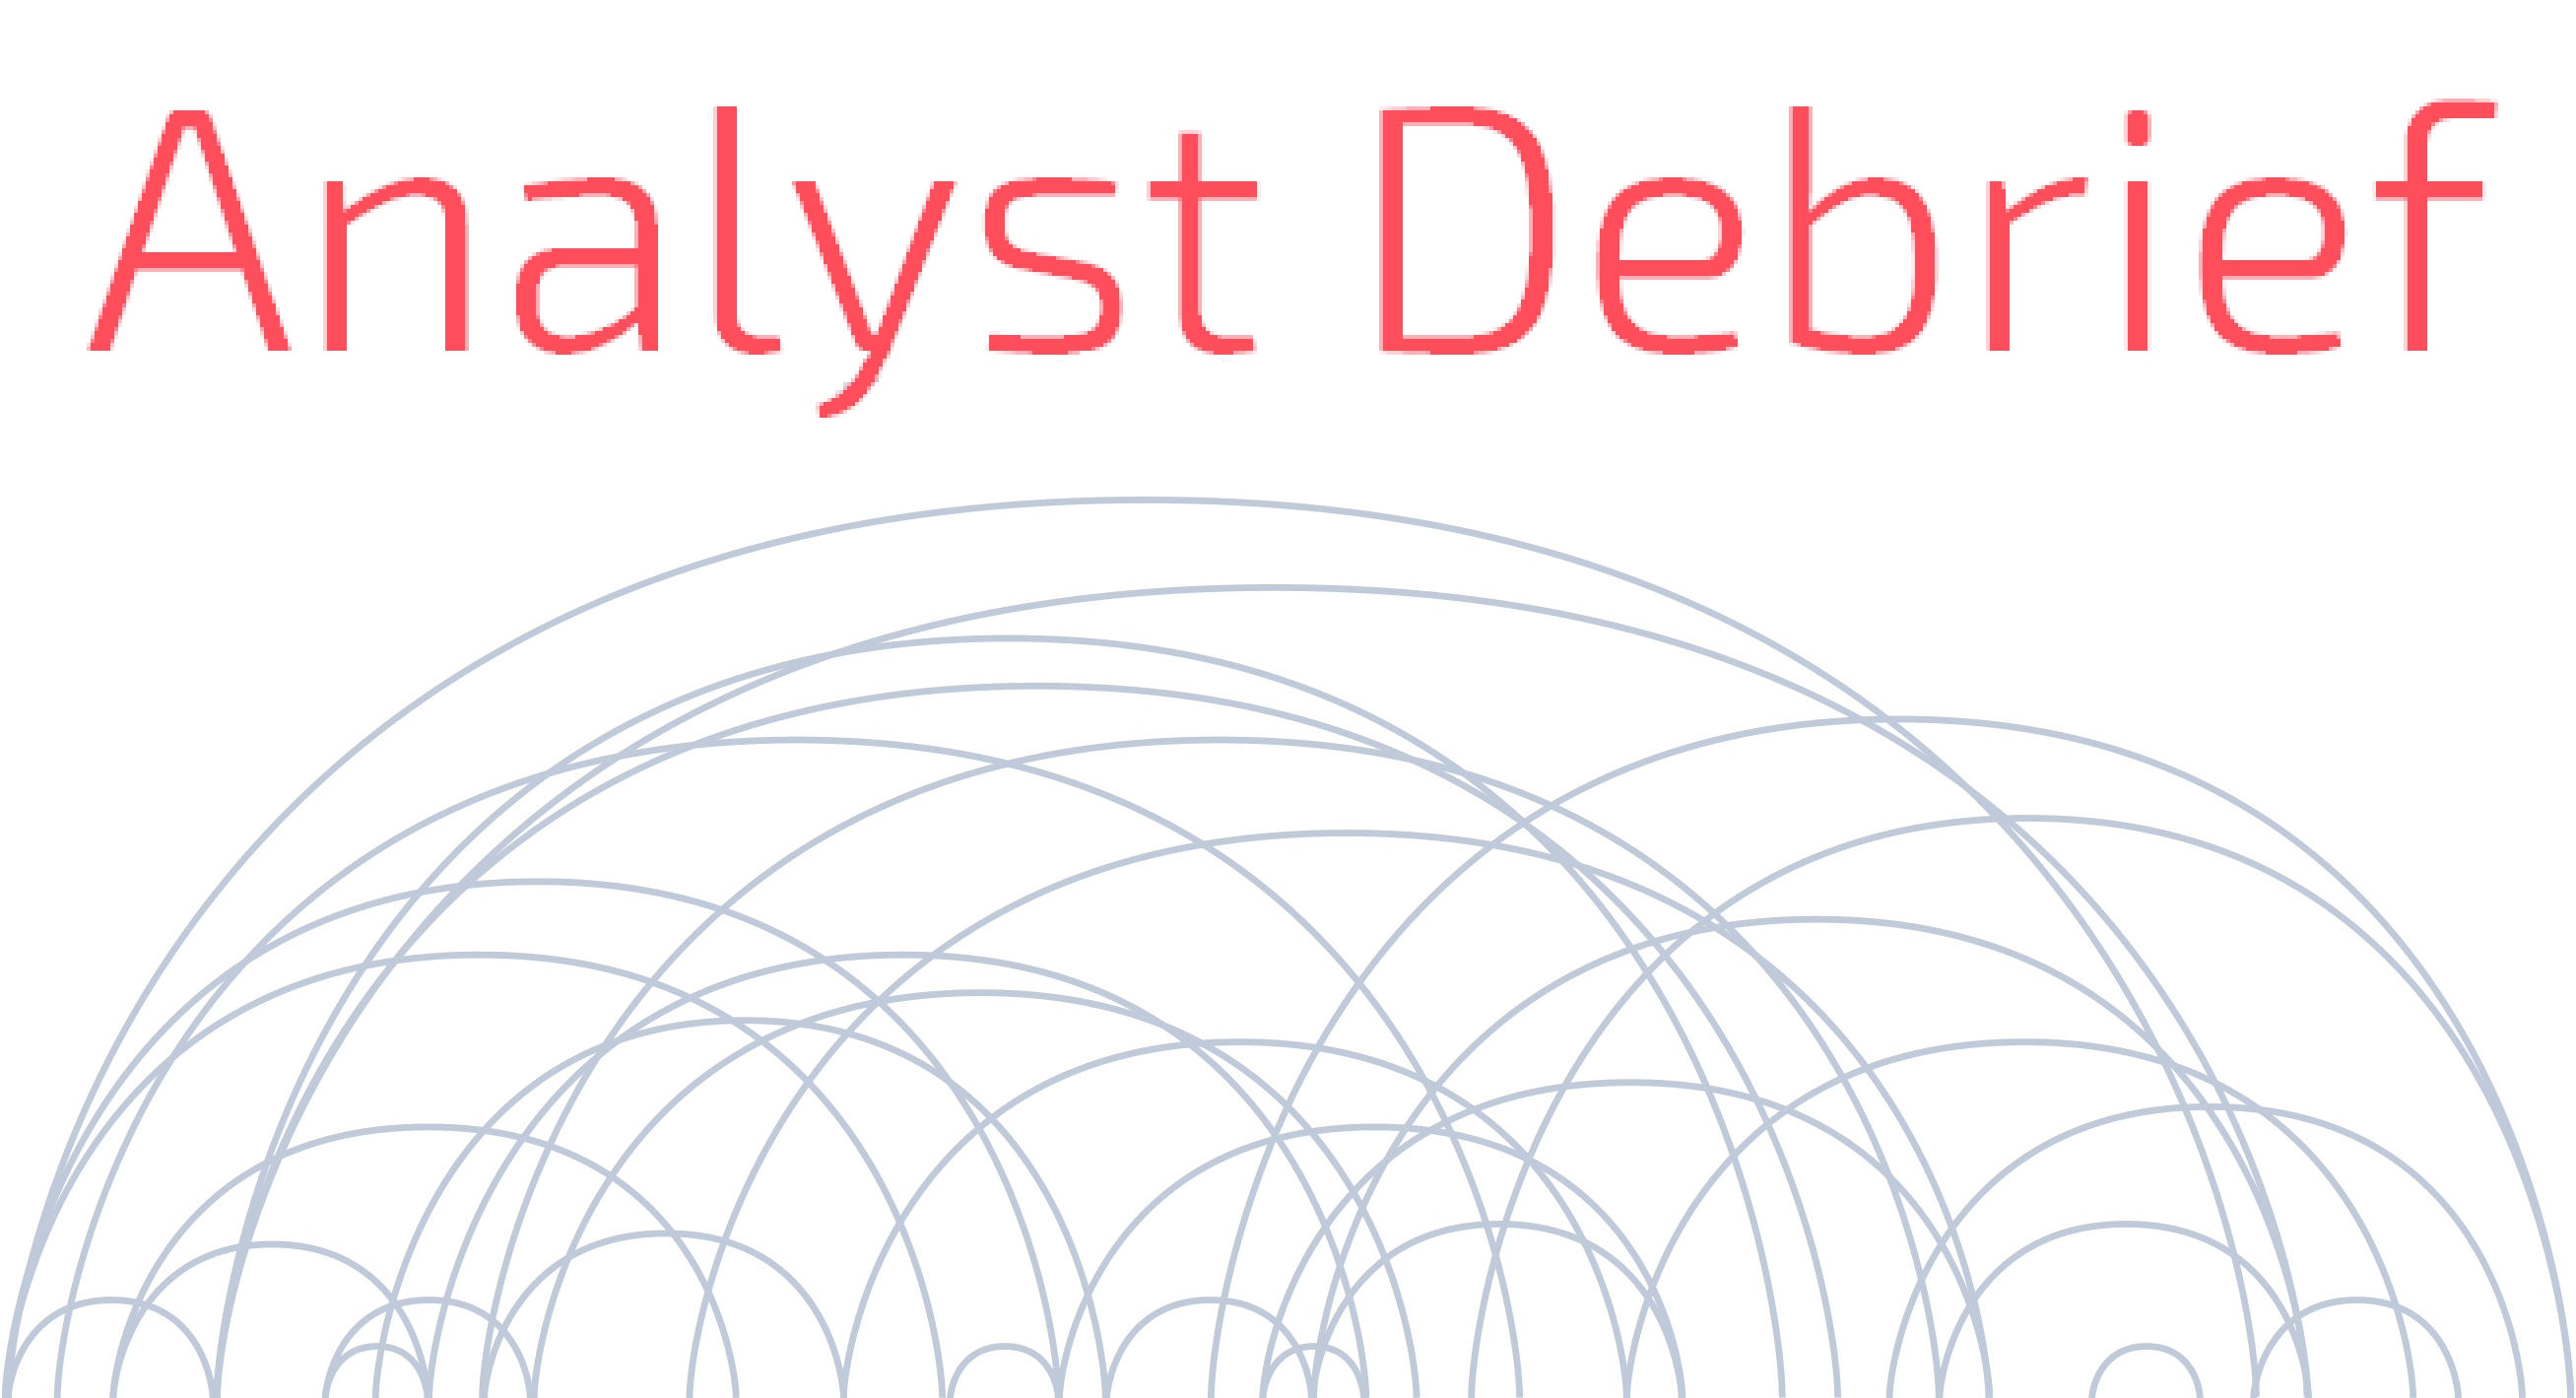 Analyst_Debrief-1